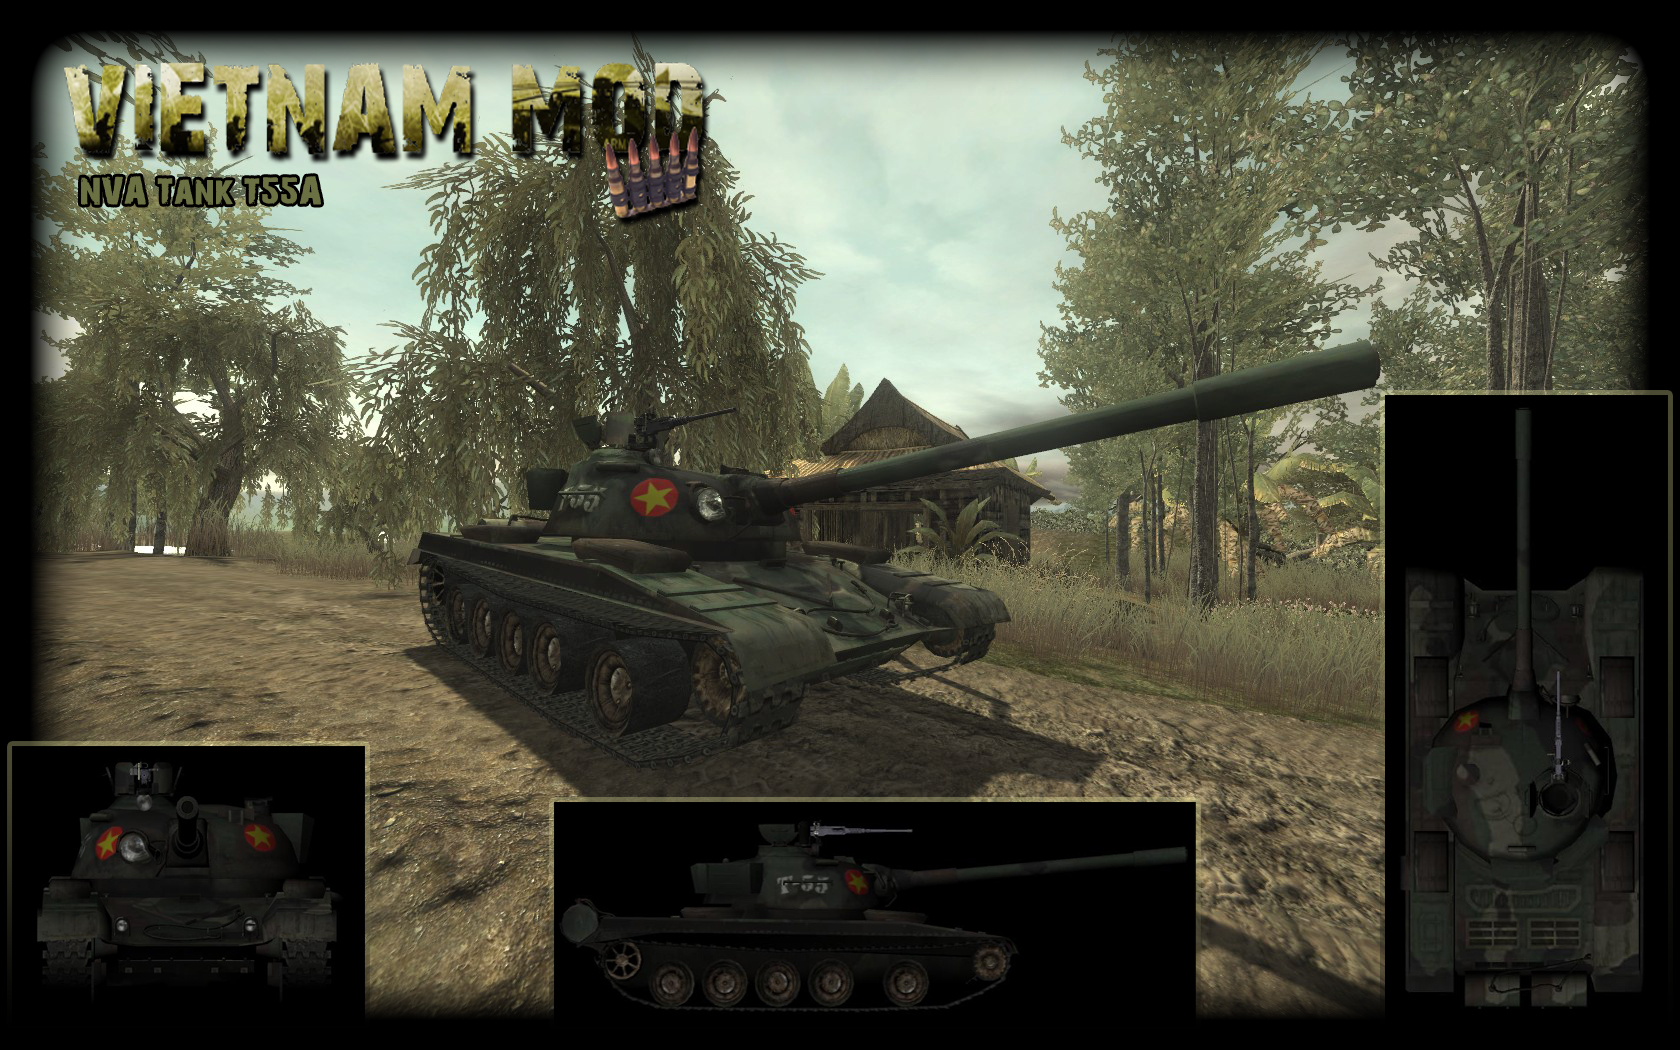 world of tanks call of duty mod